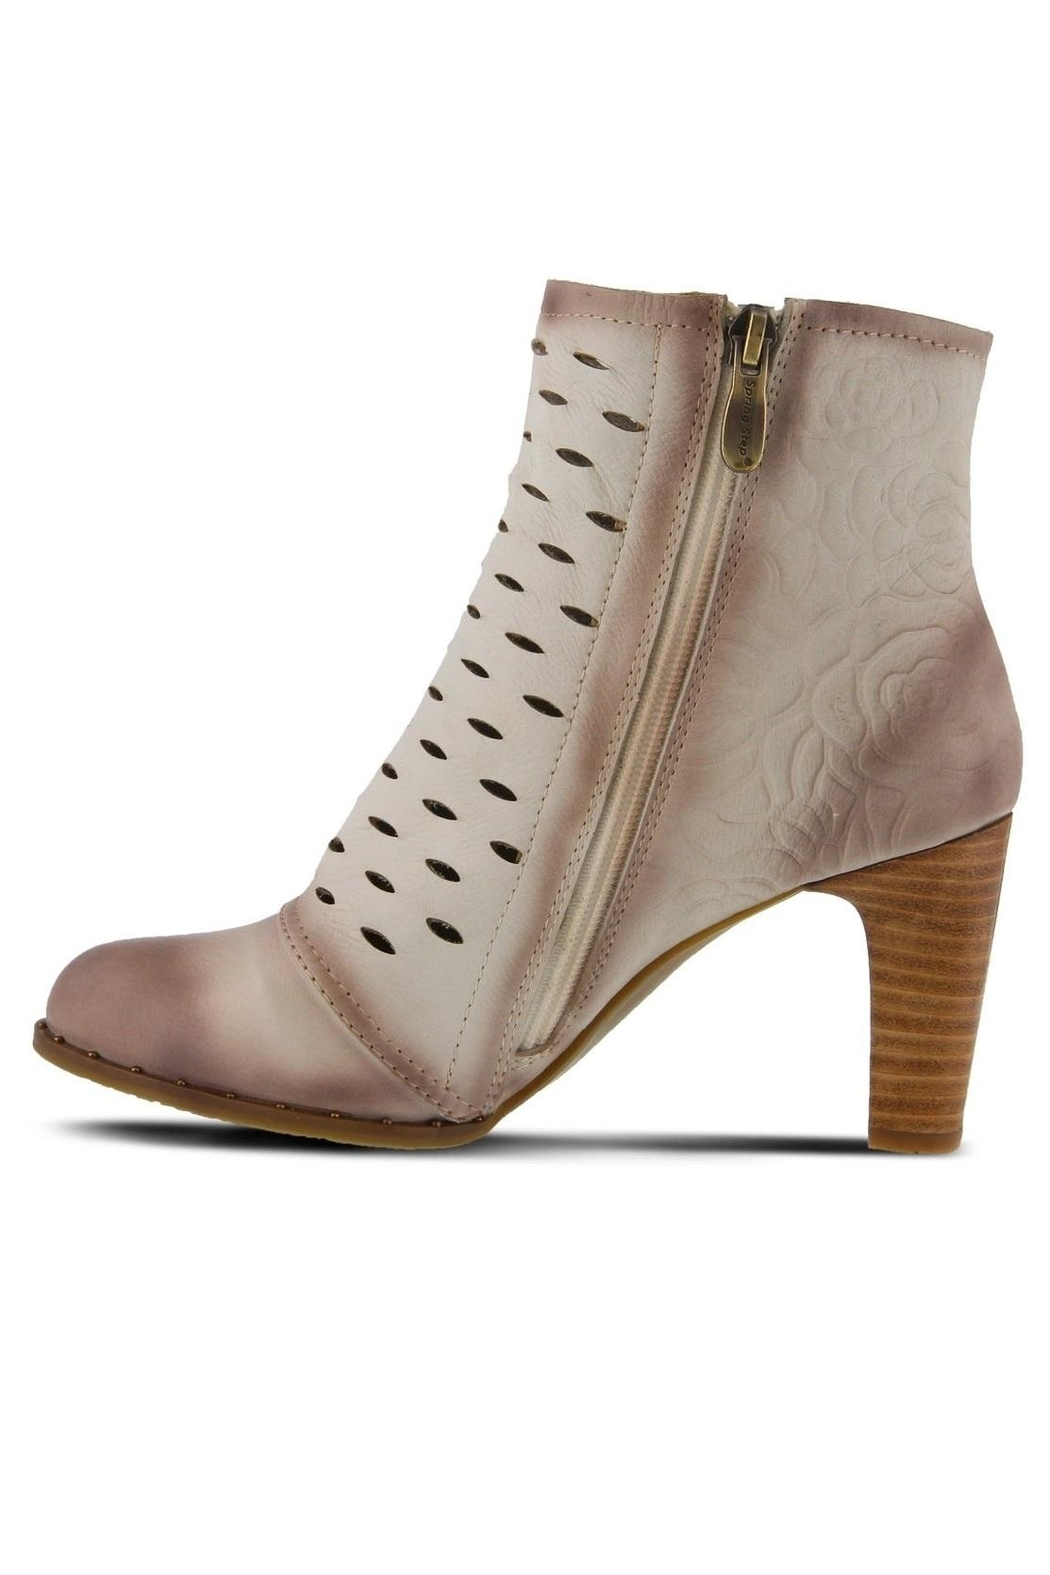 Spring Footwear Embossed Leather Bootie - Front Full Image